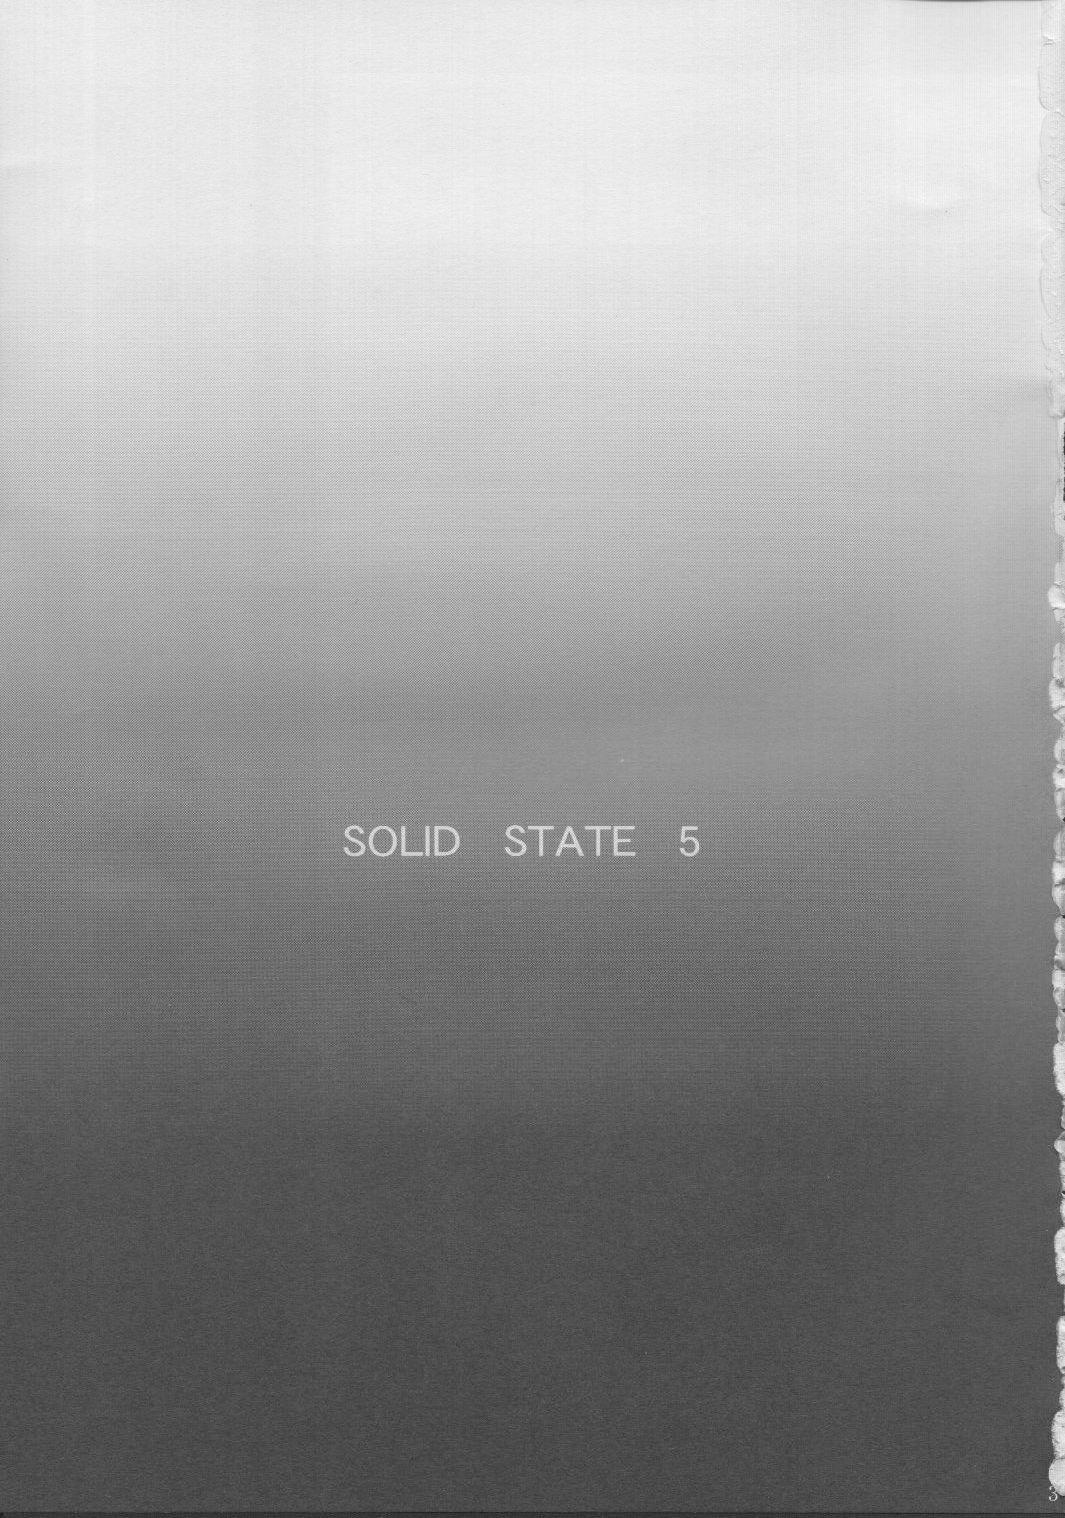 SOLID STATE 5 1